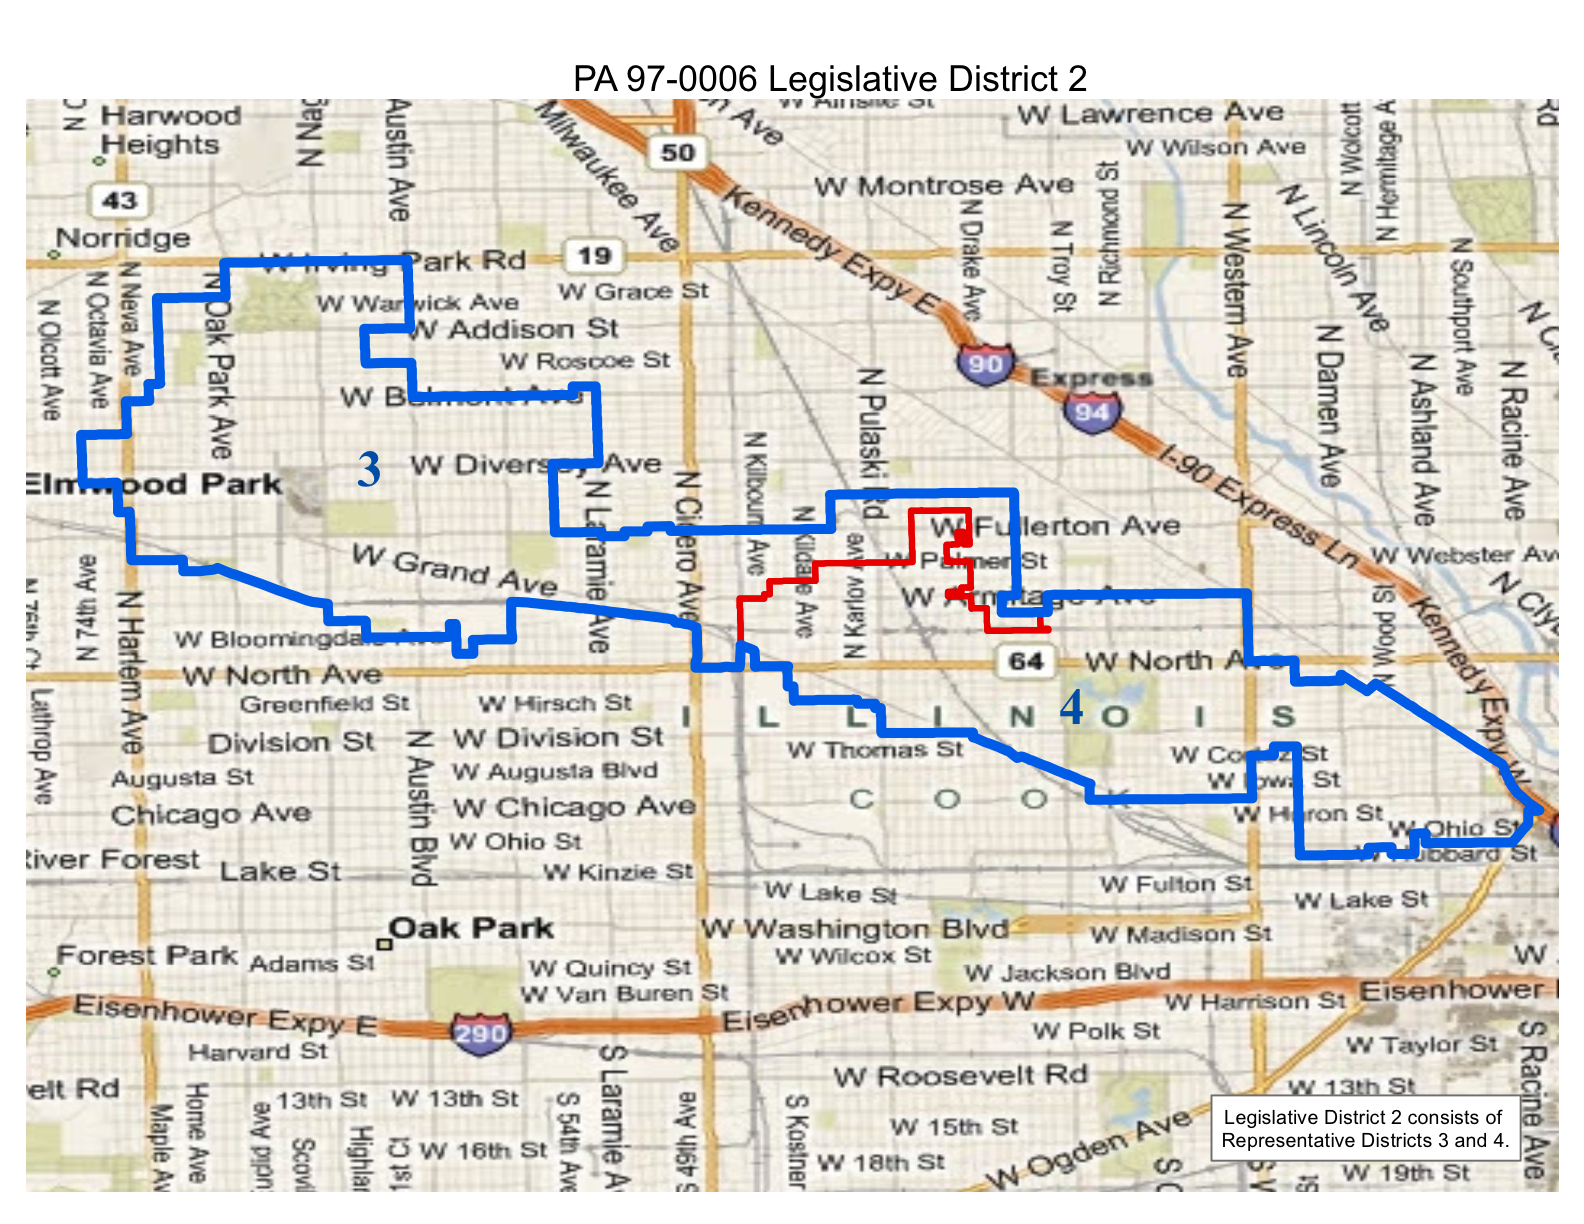 illinois legislative district 2 which extends from about harlem to i 90 expressway and west irving park road and north avenue in chicago